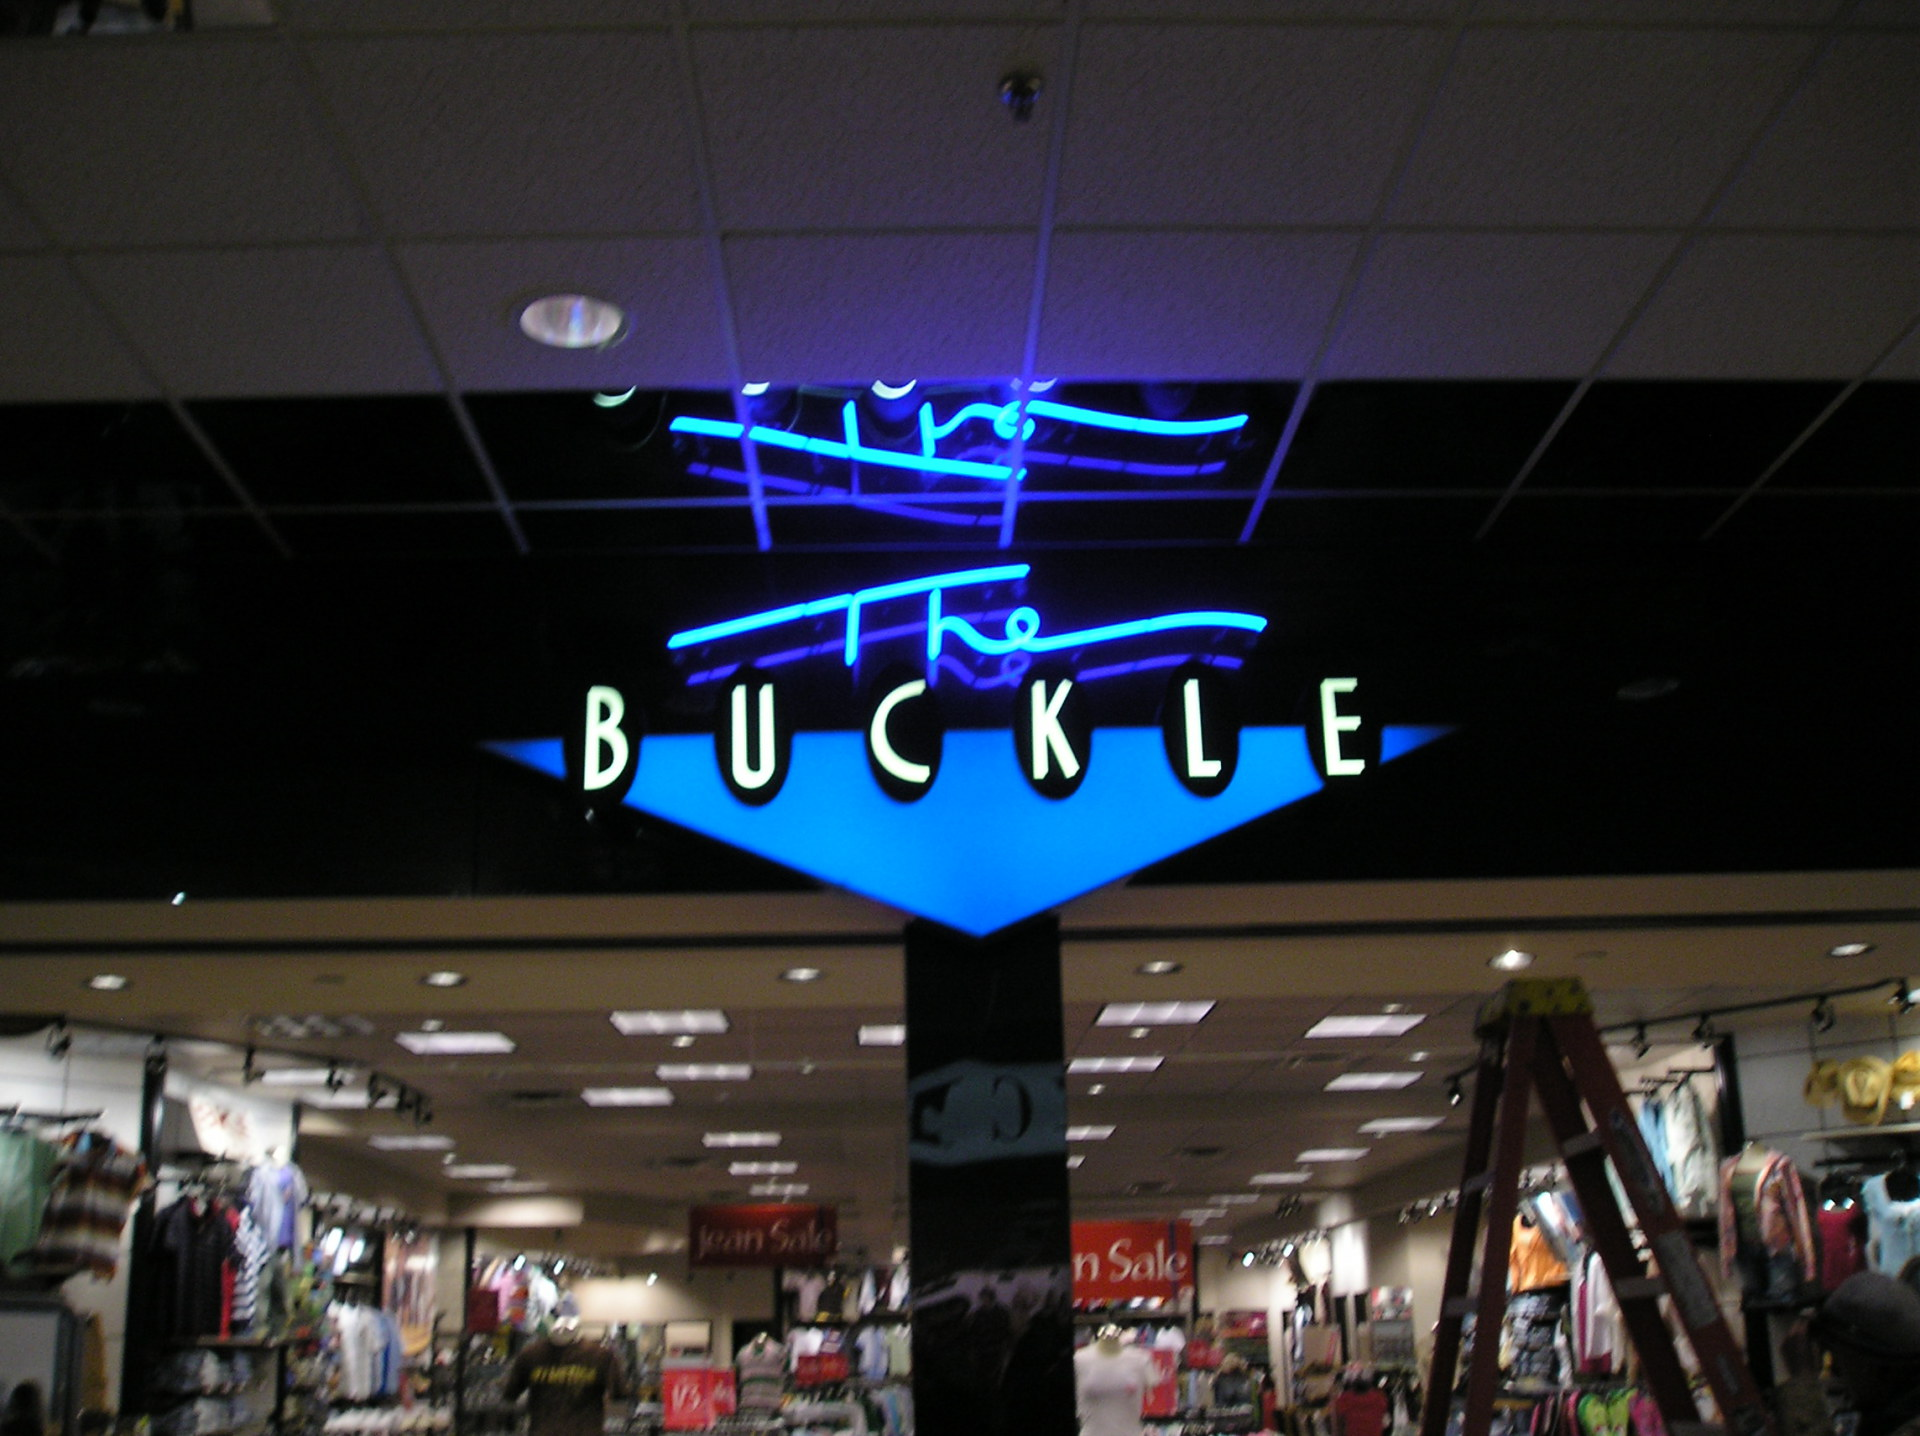 The Buckle